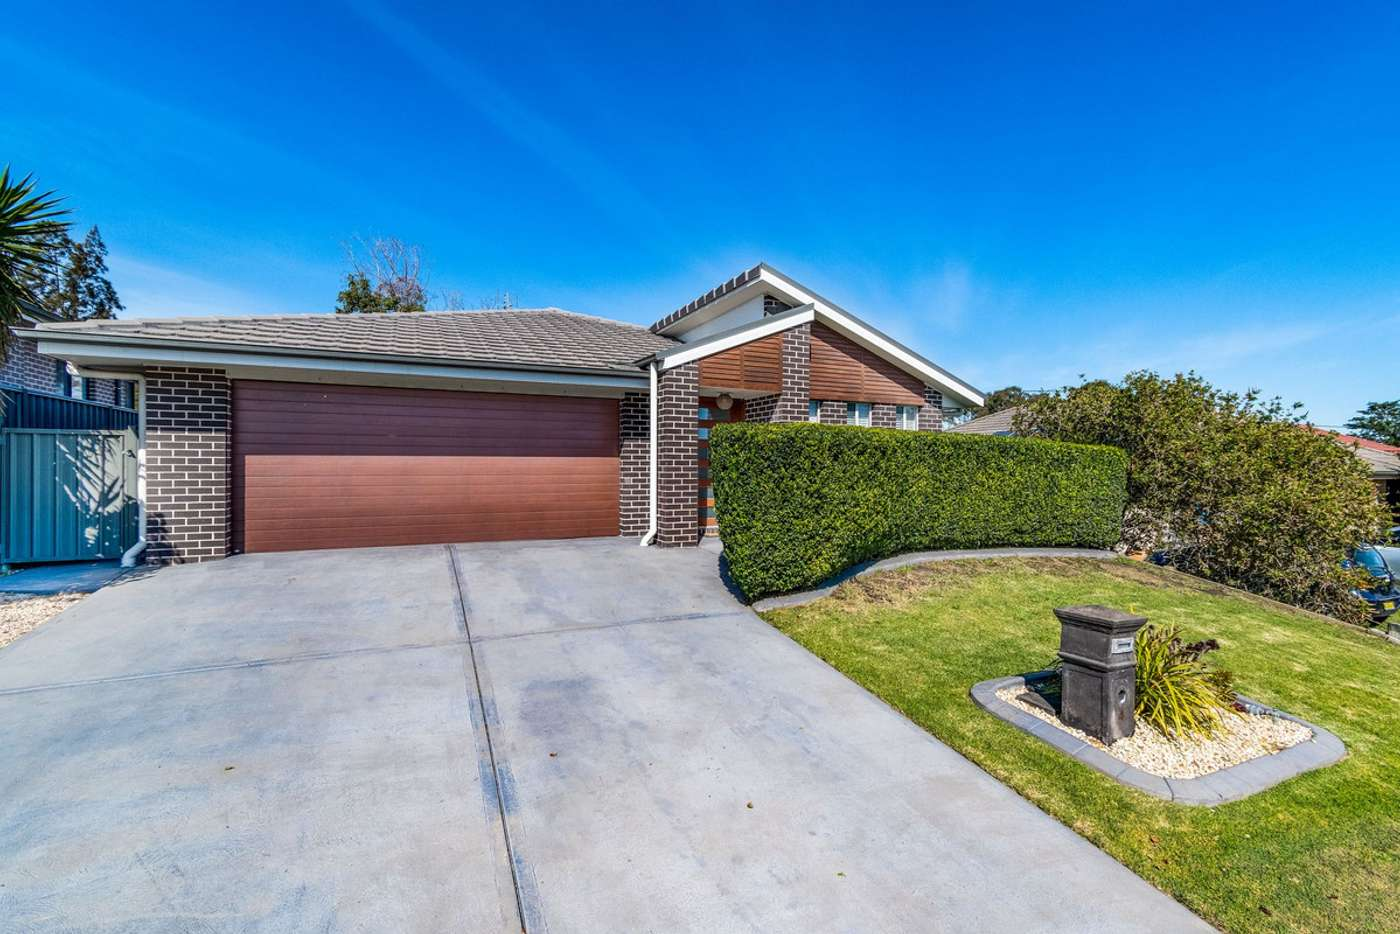 Main view of Homely house listing, 4 Redgrove Court, East Branxton NSW 2335